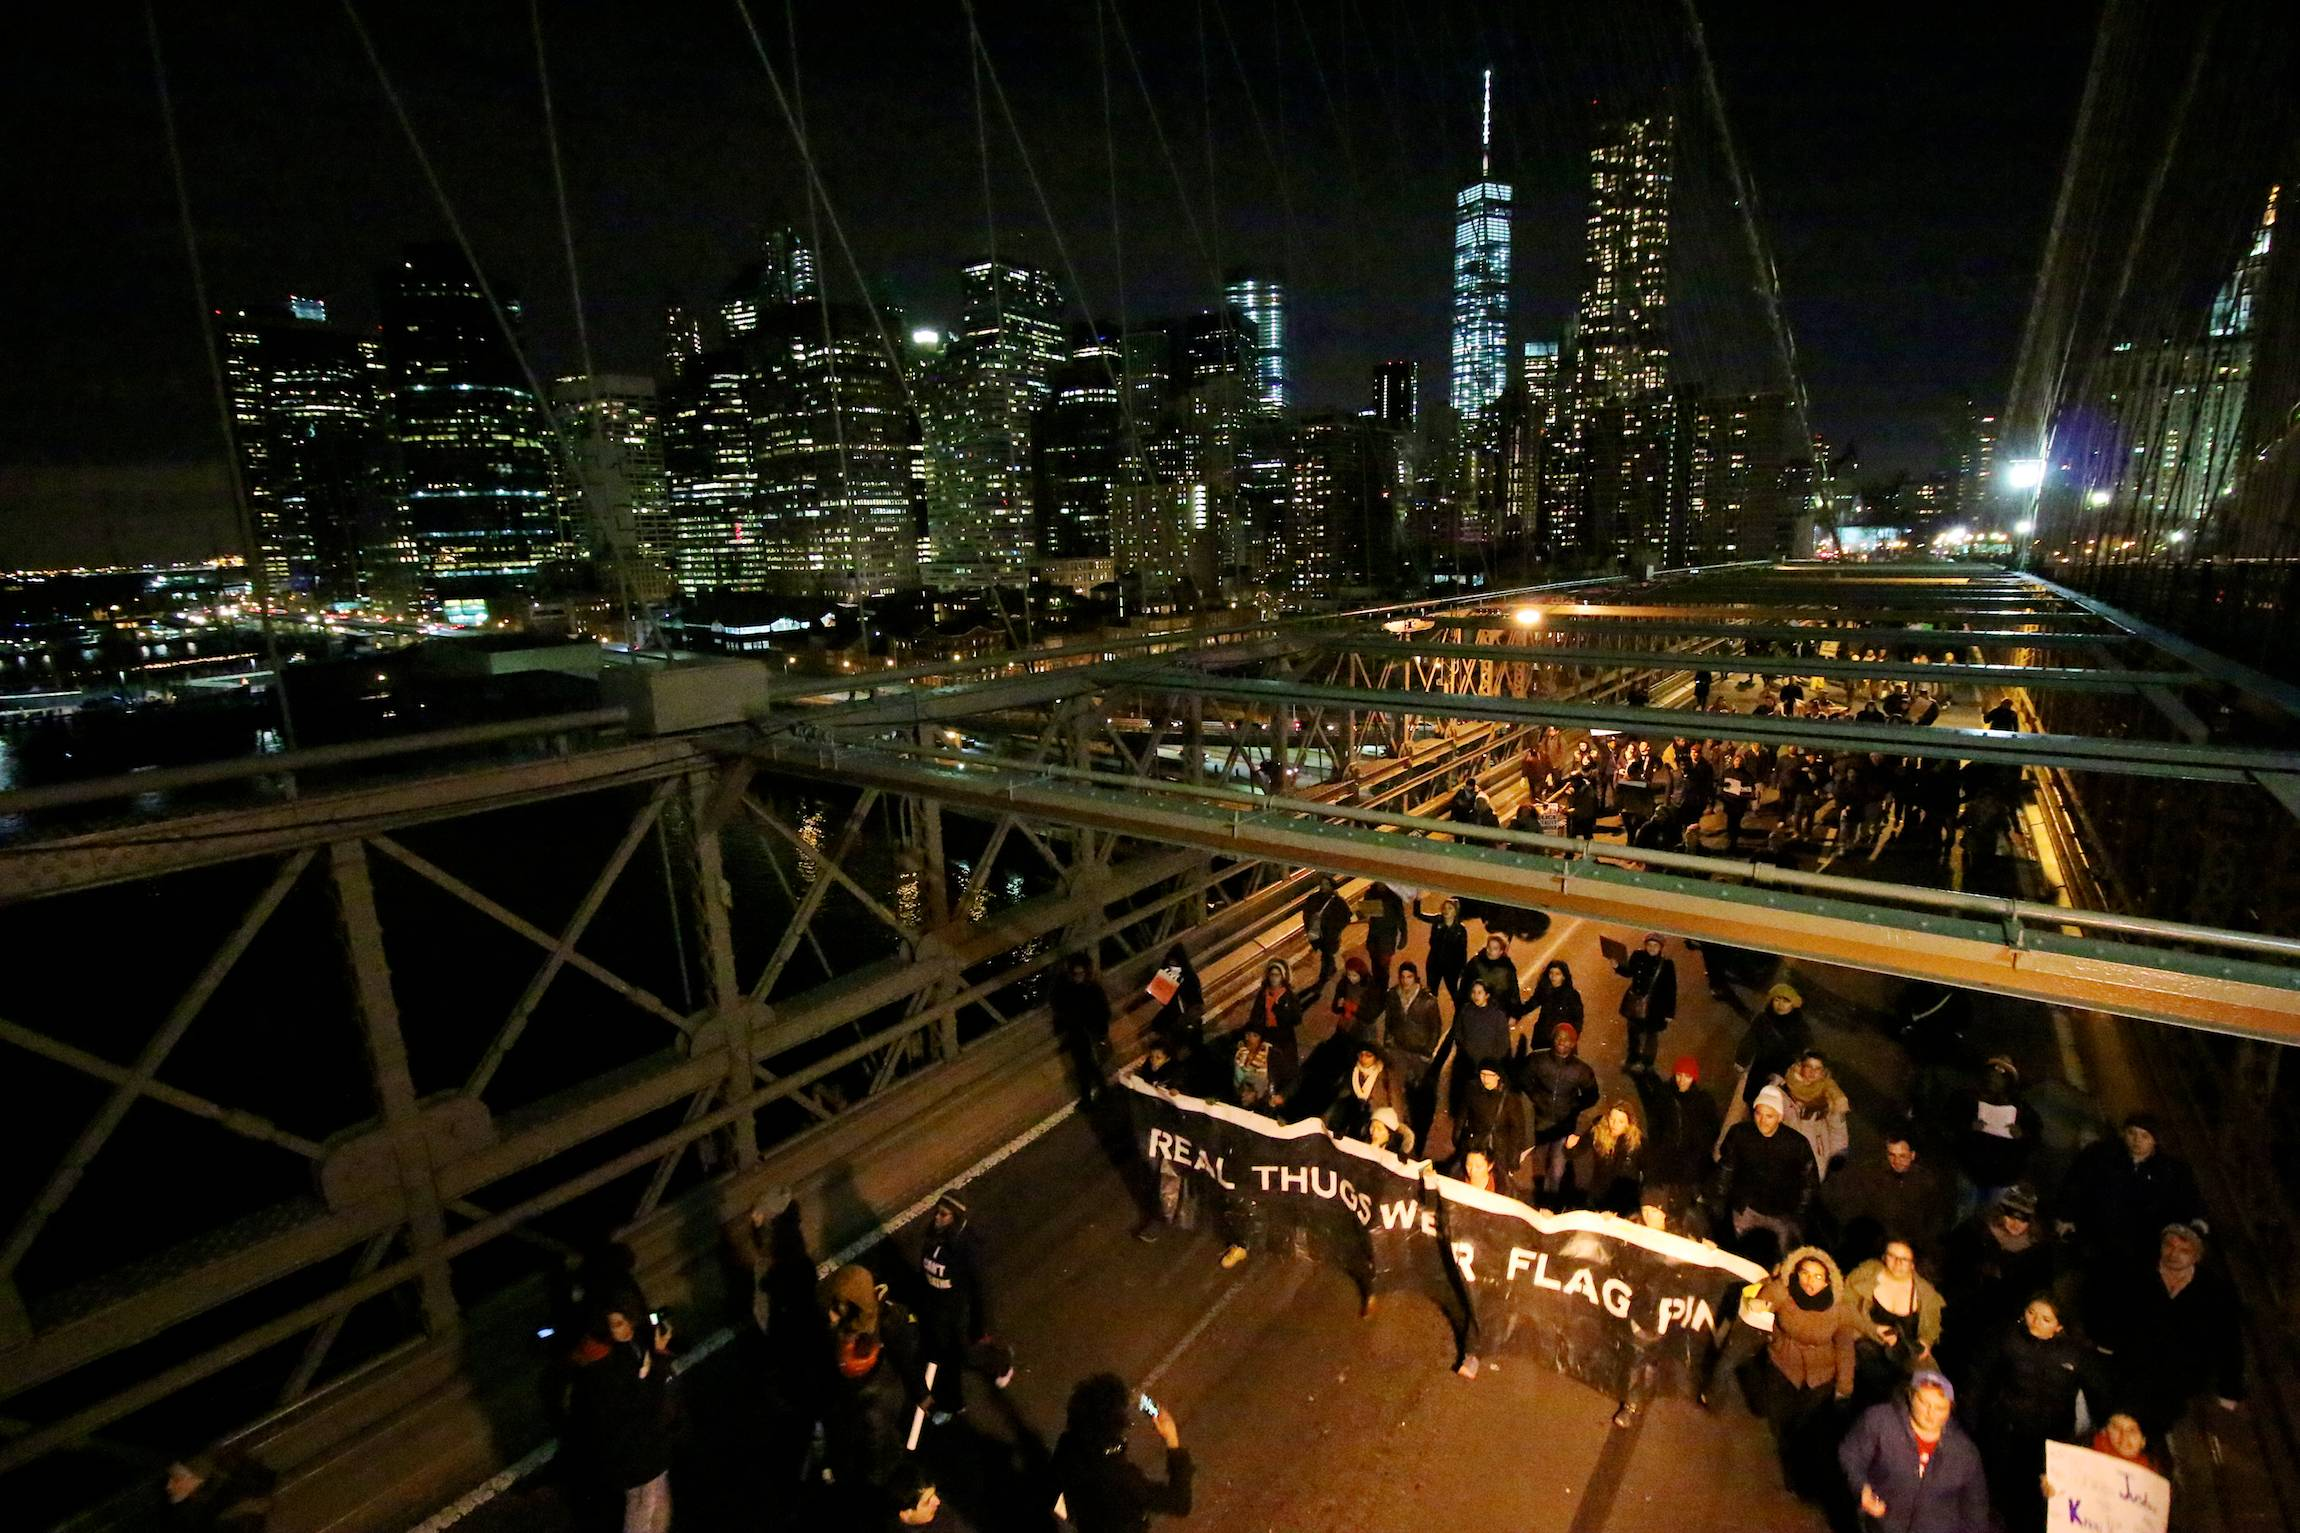 Protesters take to the streets on Brooklyn Bridge in New York to protest Grand Jury decisions not to indict policemen in the deaths of Michael Brown and Eric Garner, In New York City, Dec. 13, 2014, after an organized march earlier that day.